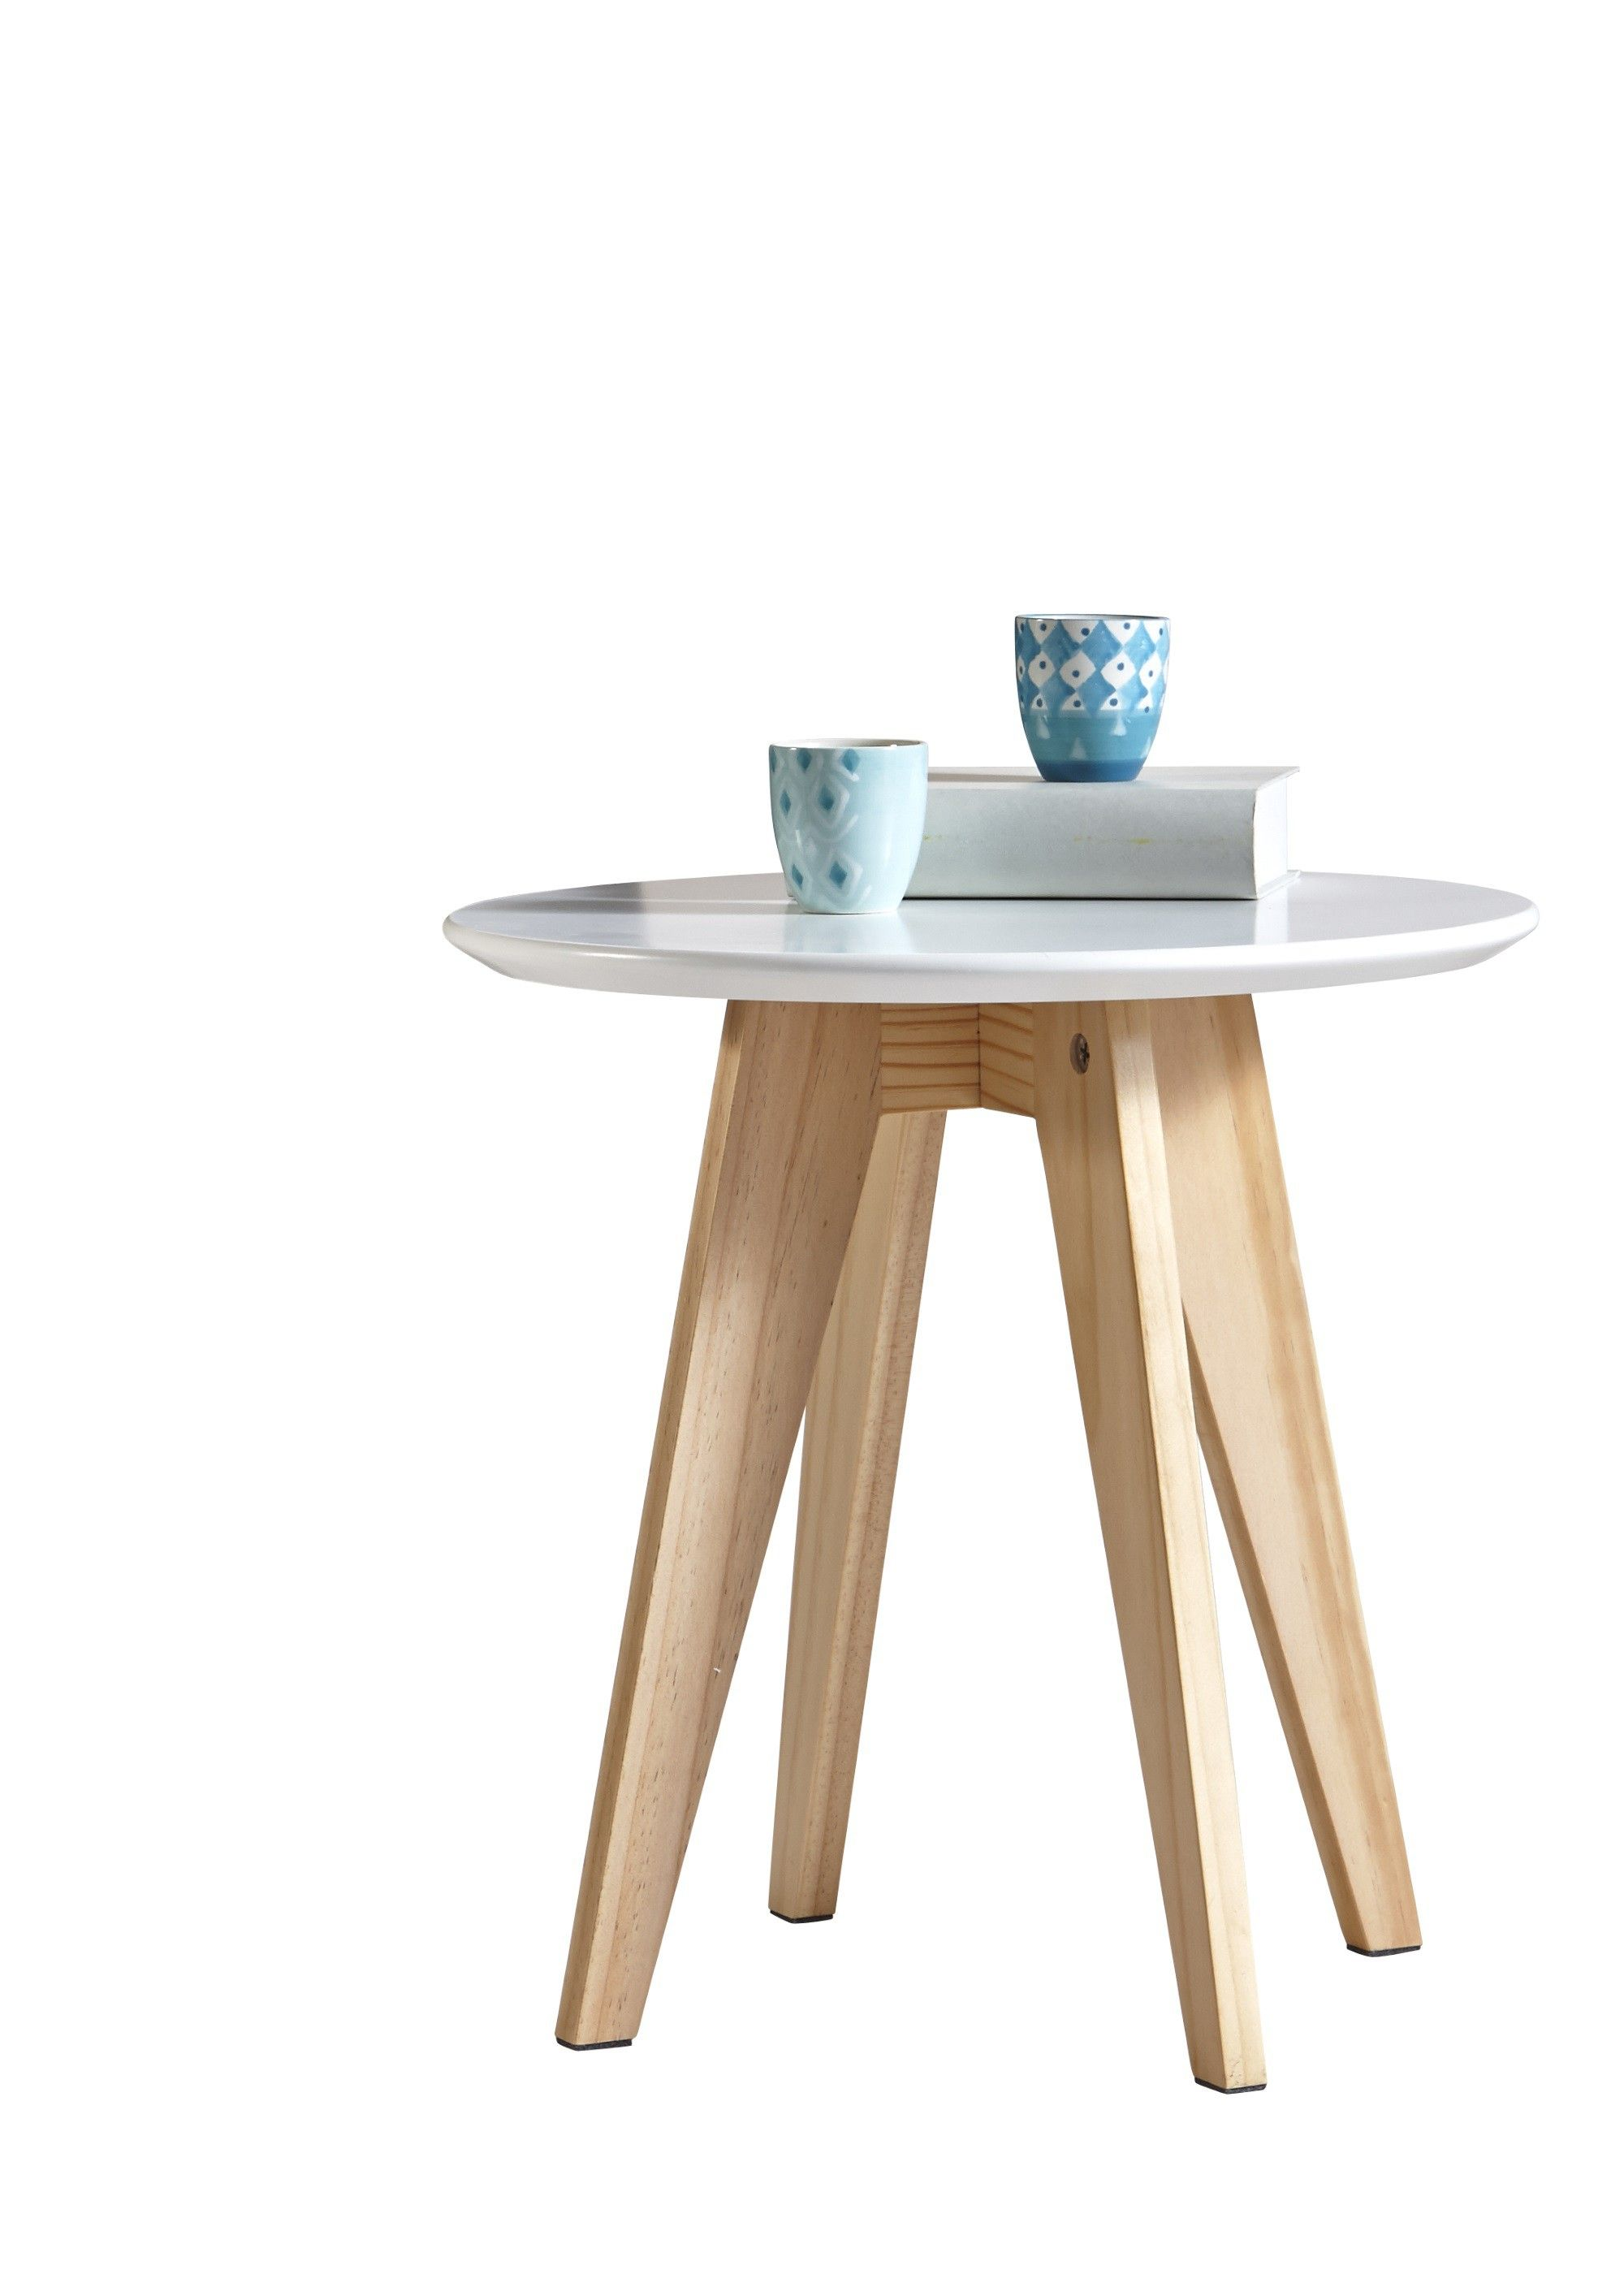 Tables Basses Soldes Table Basse Contemporaine Ronde Blanche Mafalda Table Basse